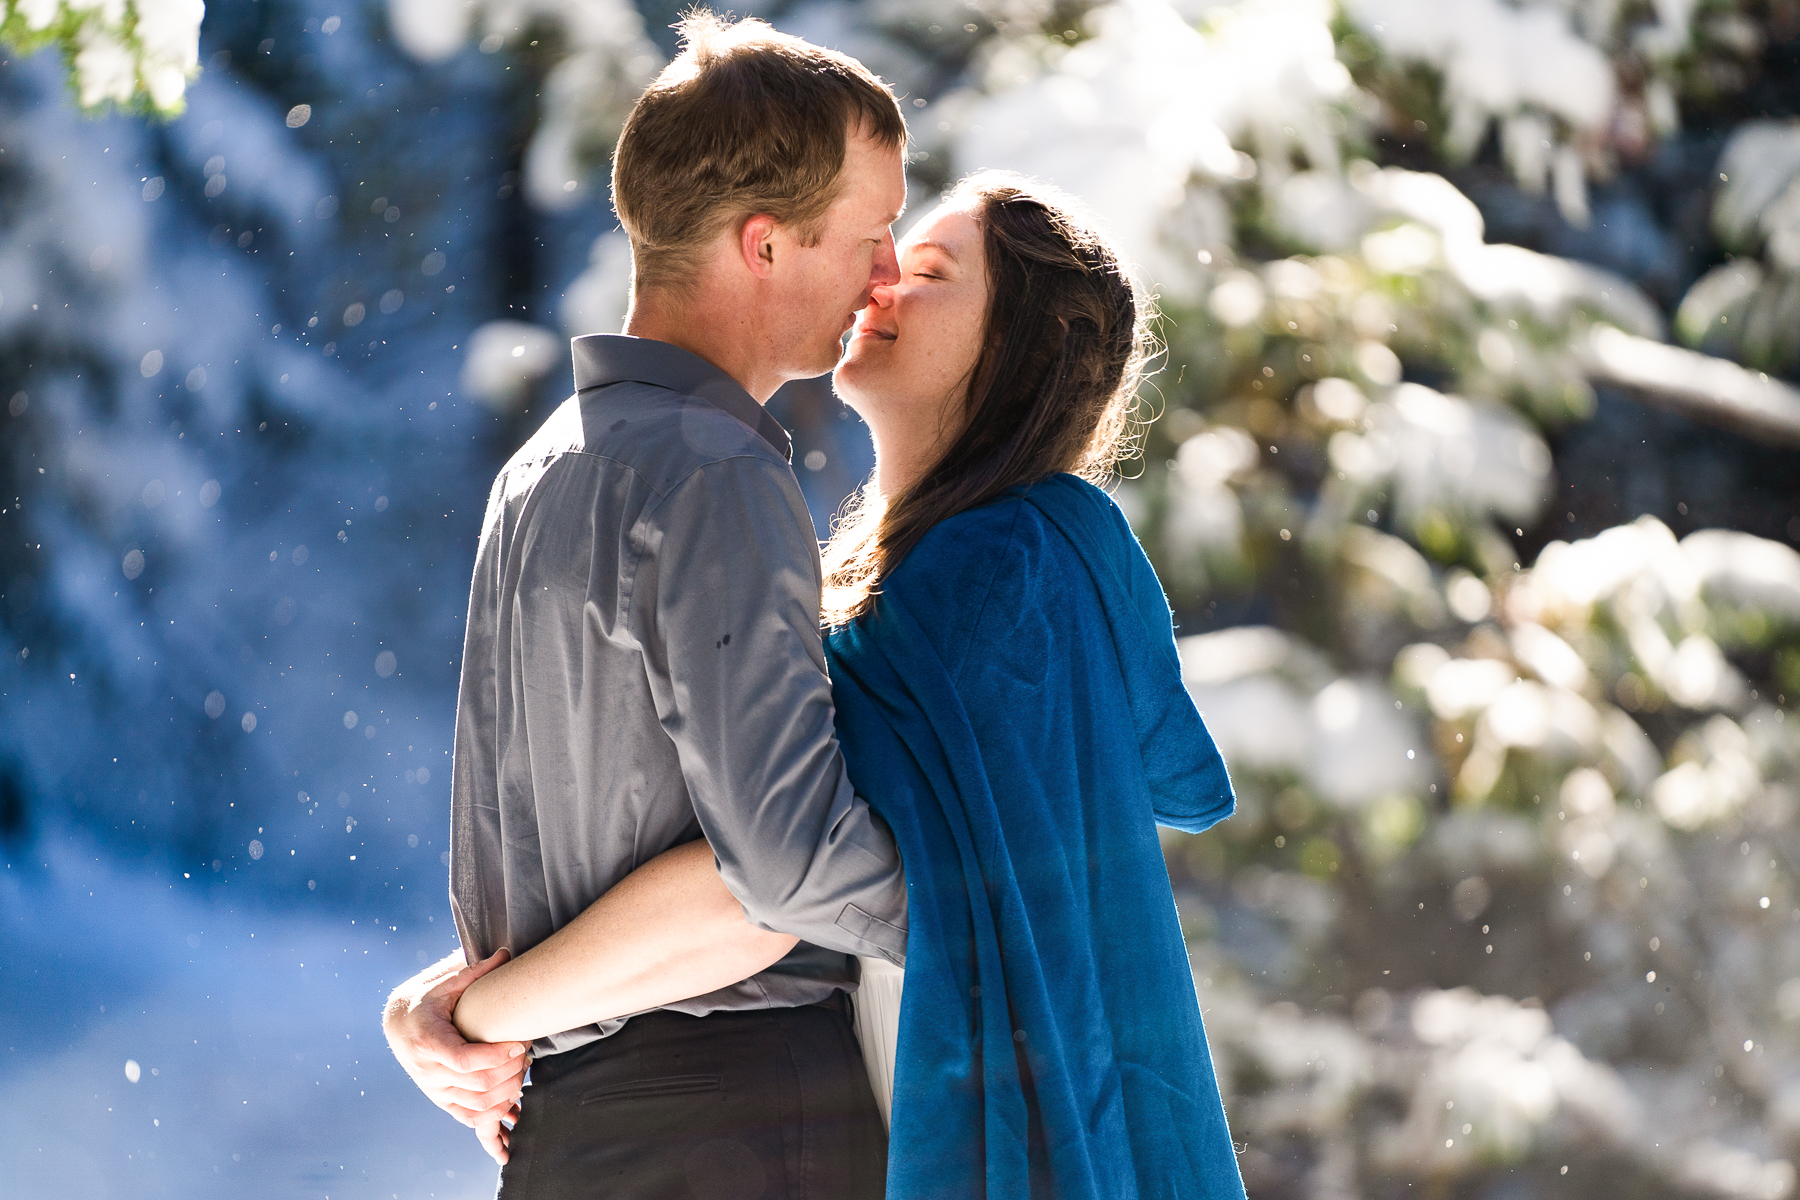 CO Adventure Elopement Wedding Photography | snow kept falling all around them, and a shaft of sunlight was too beautiful to pass